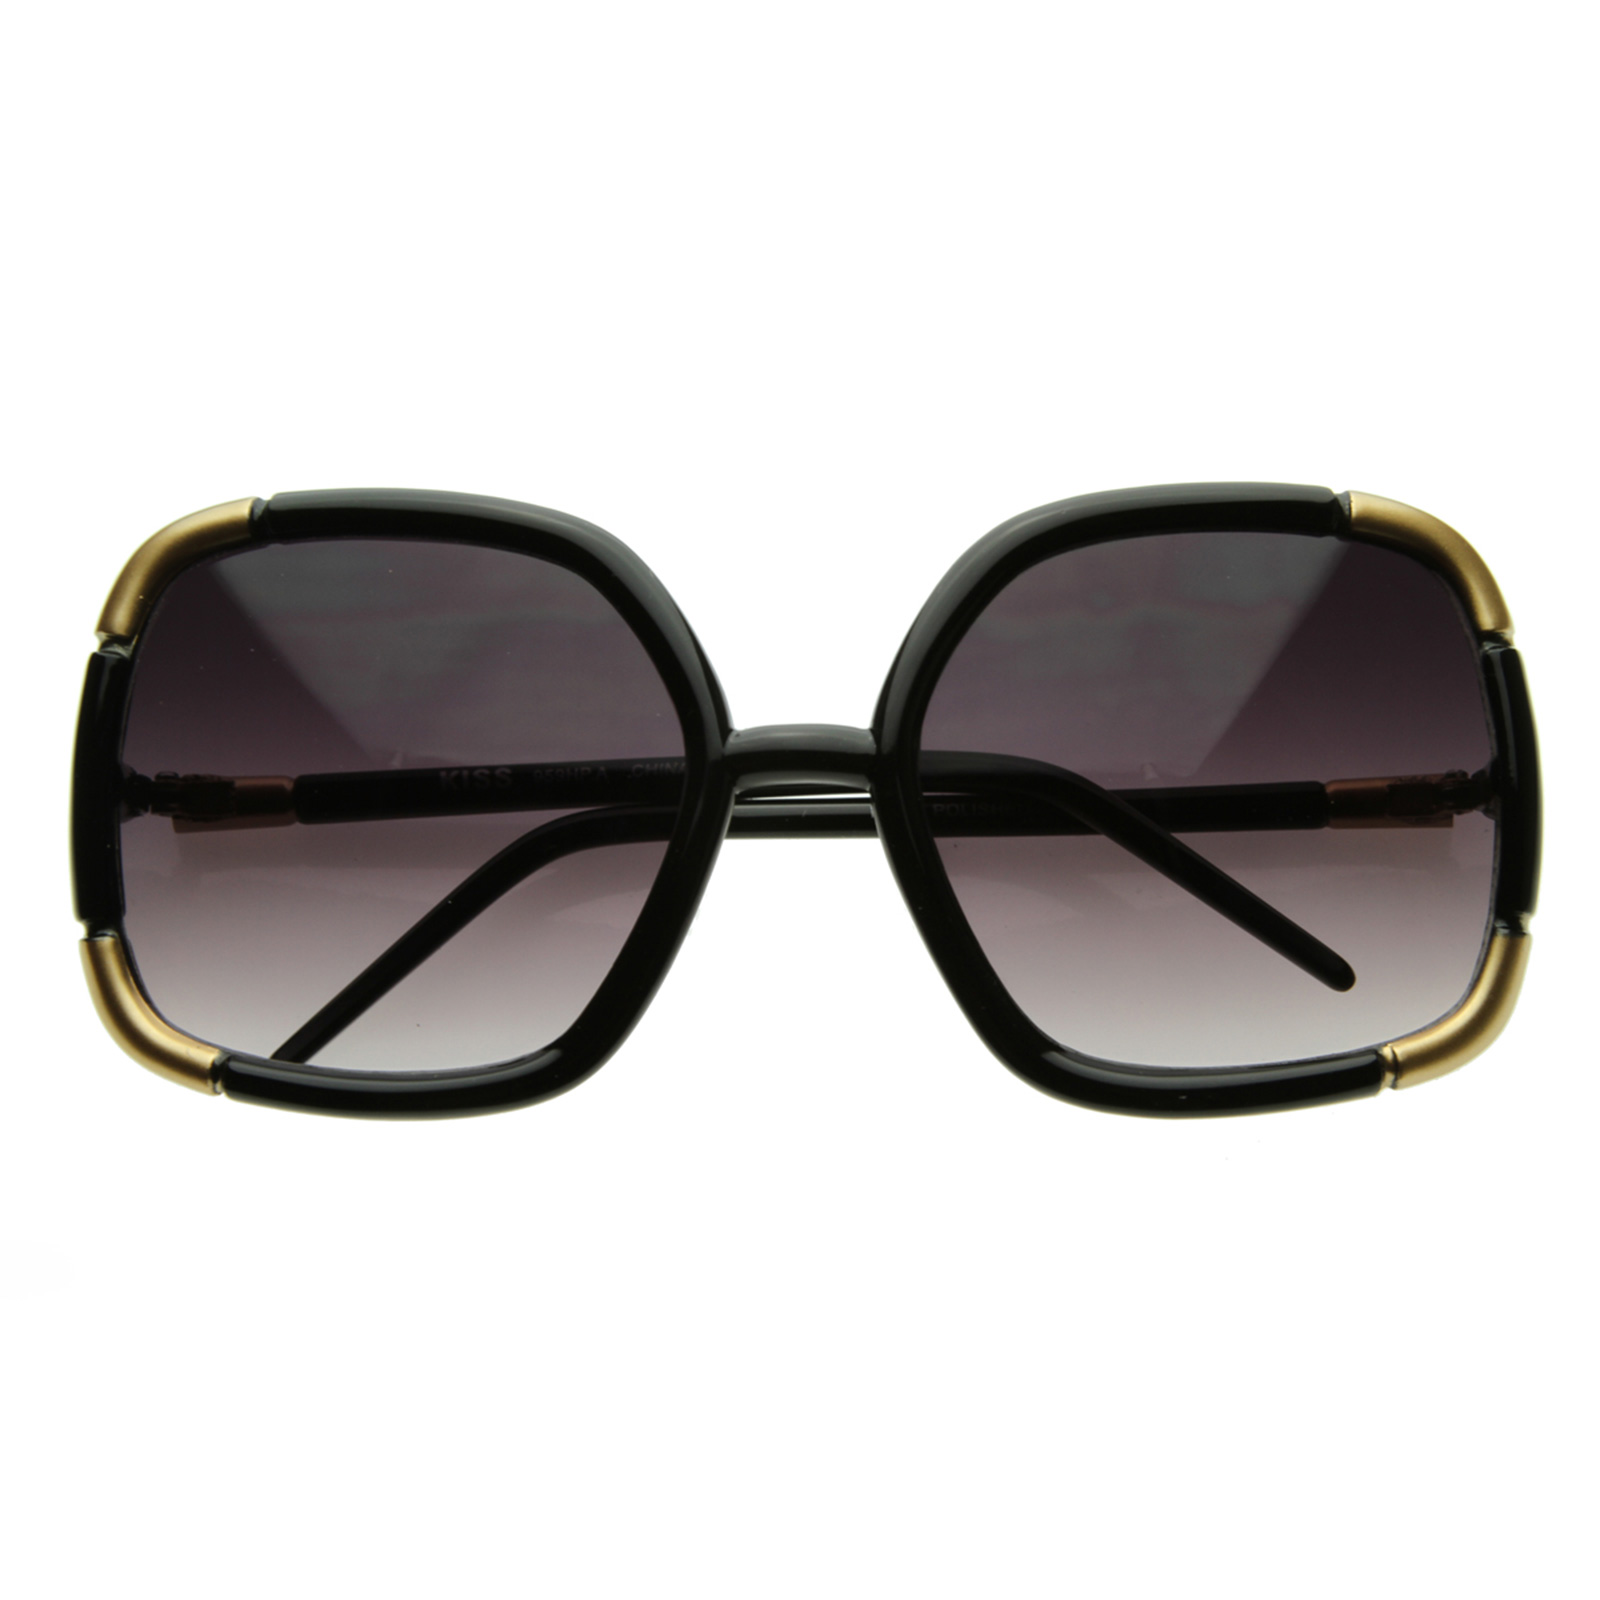 Oversized Gold Frame Sunglasses : Celebrity Square Oversize LA TMZ Sunglasses 2597 Black eBay